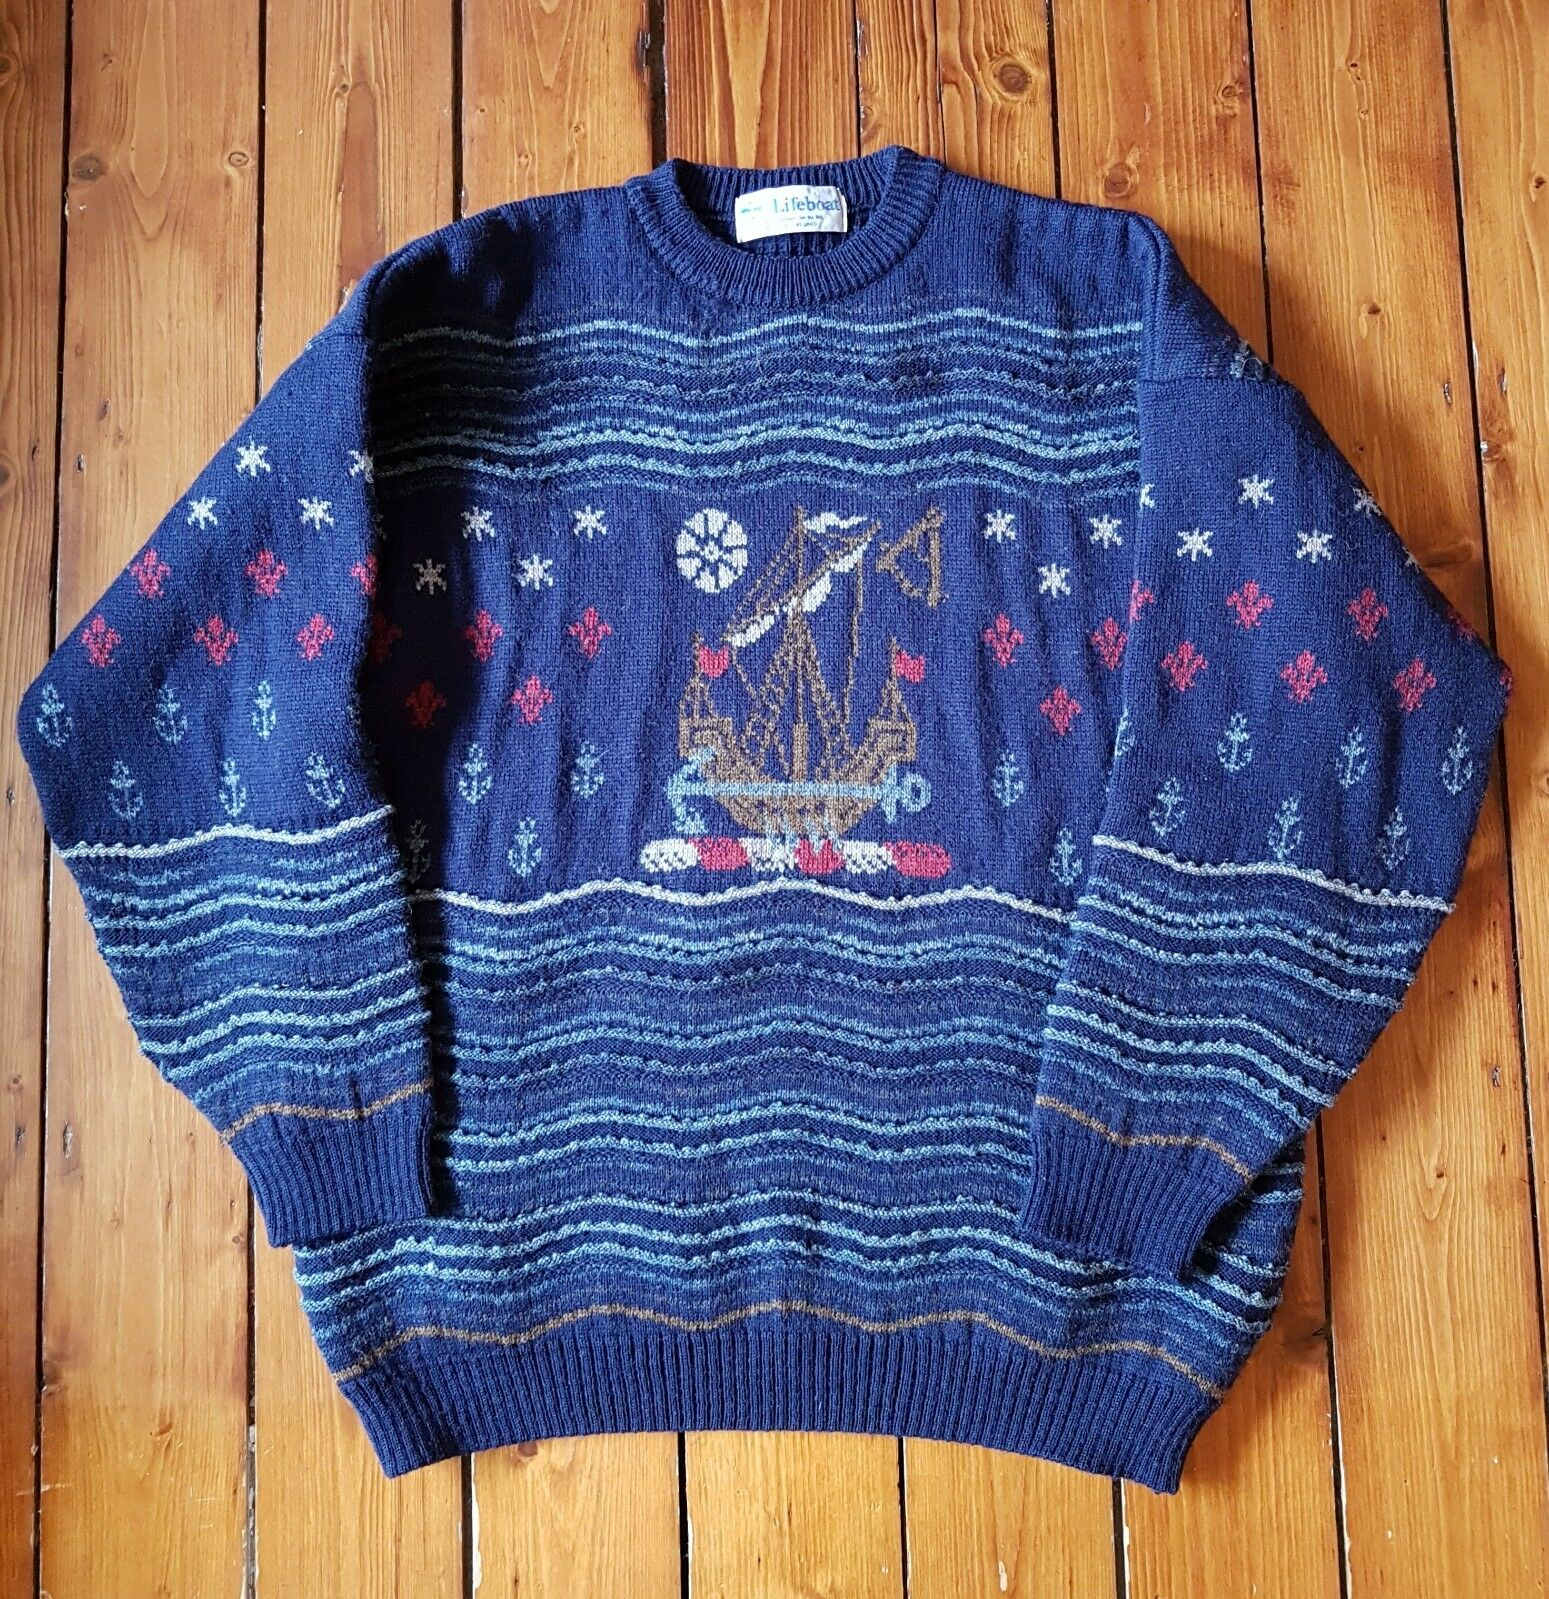 RNLI Lifeboat Navy bluee Knitted 100% Wool Winter Jumper Sweater Large 46